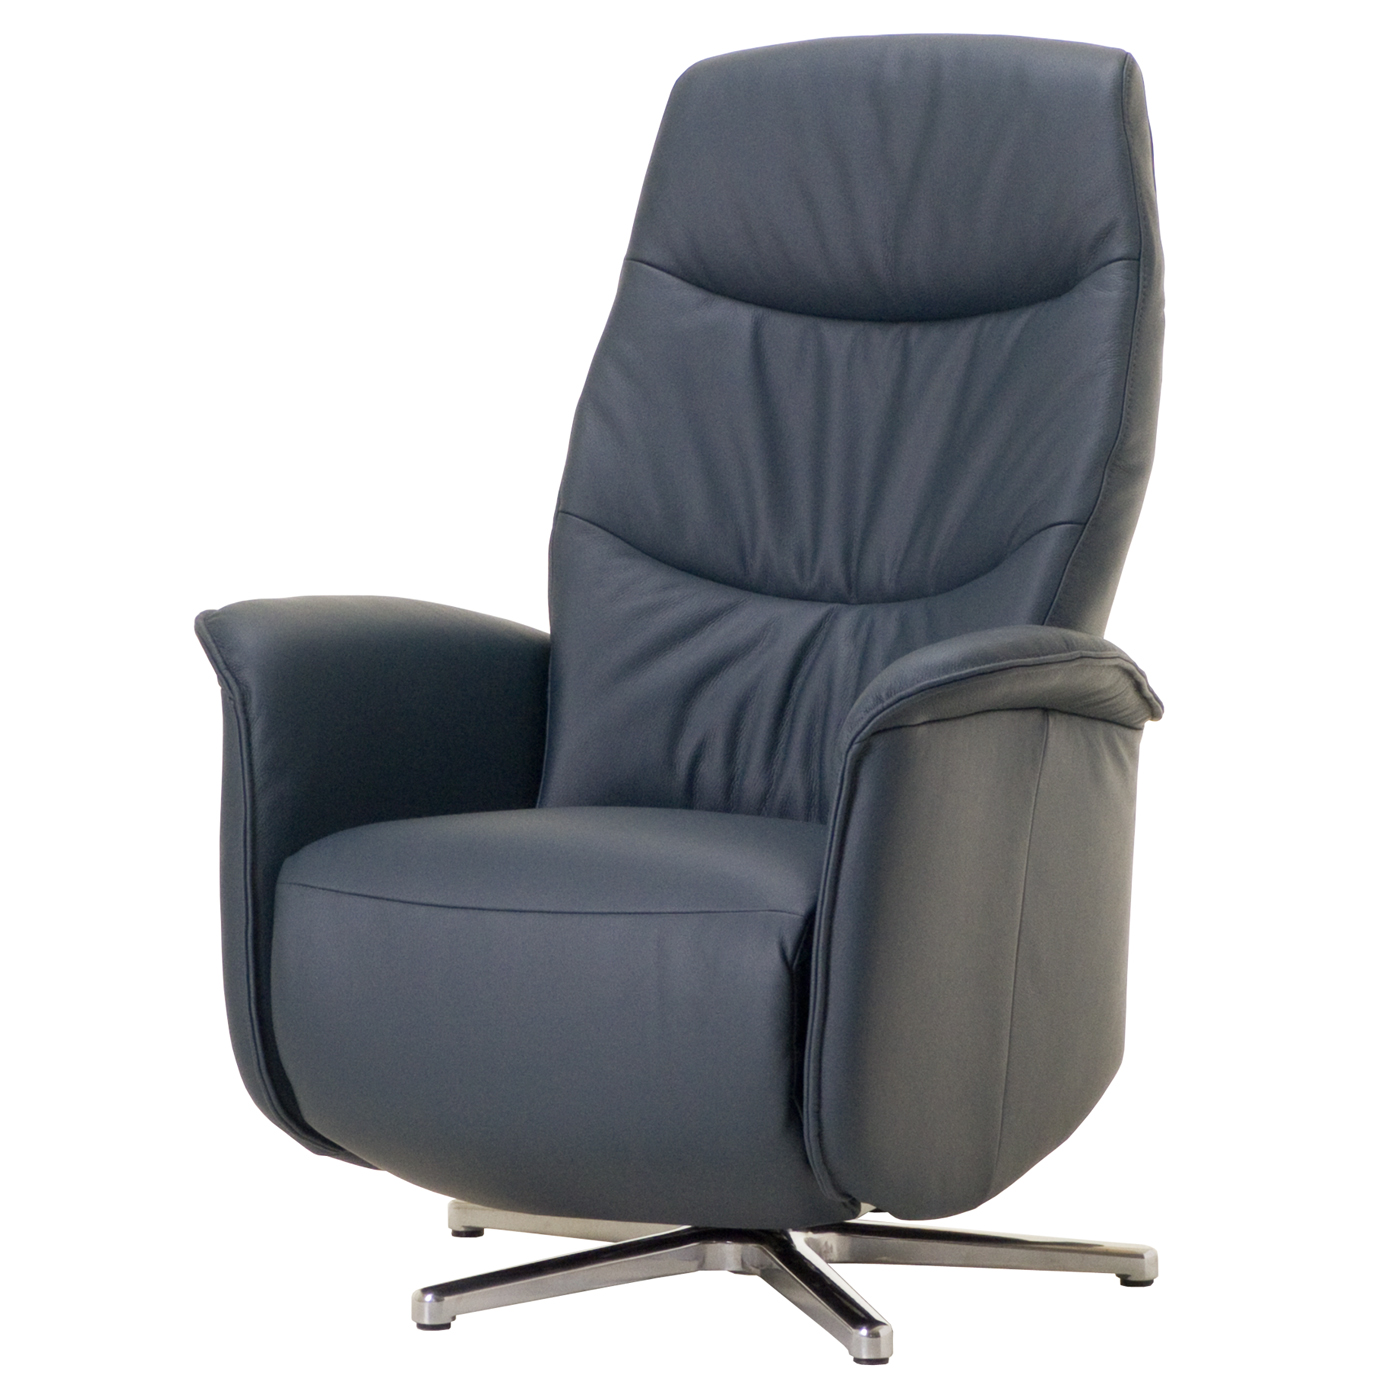 Magic MG-A01 relaxfauteuil